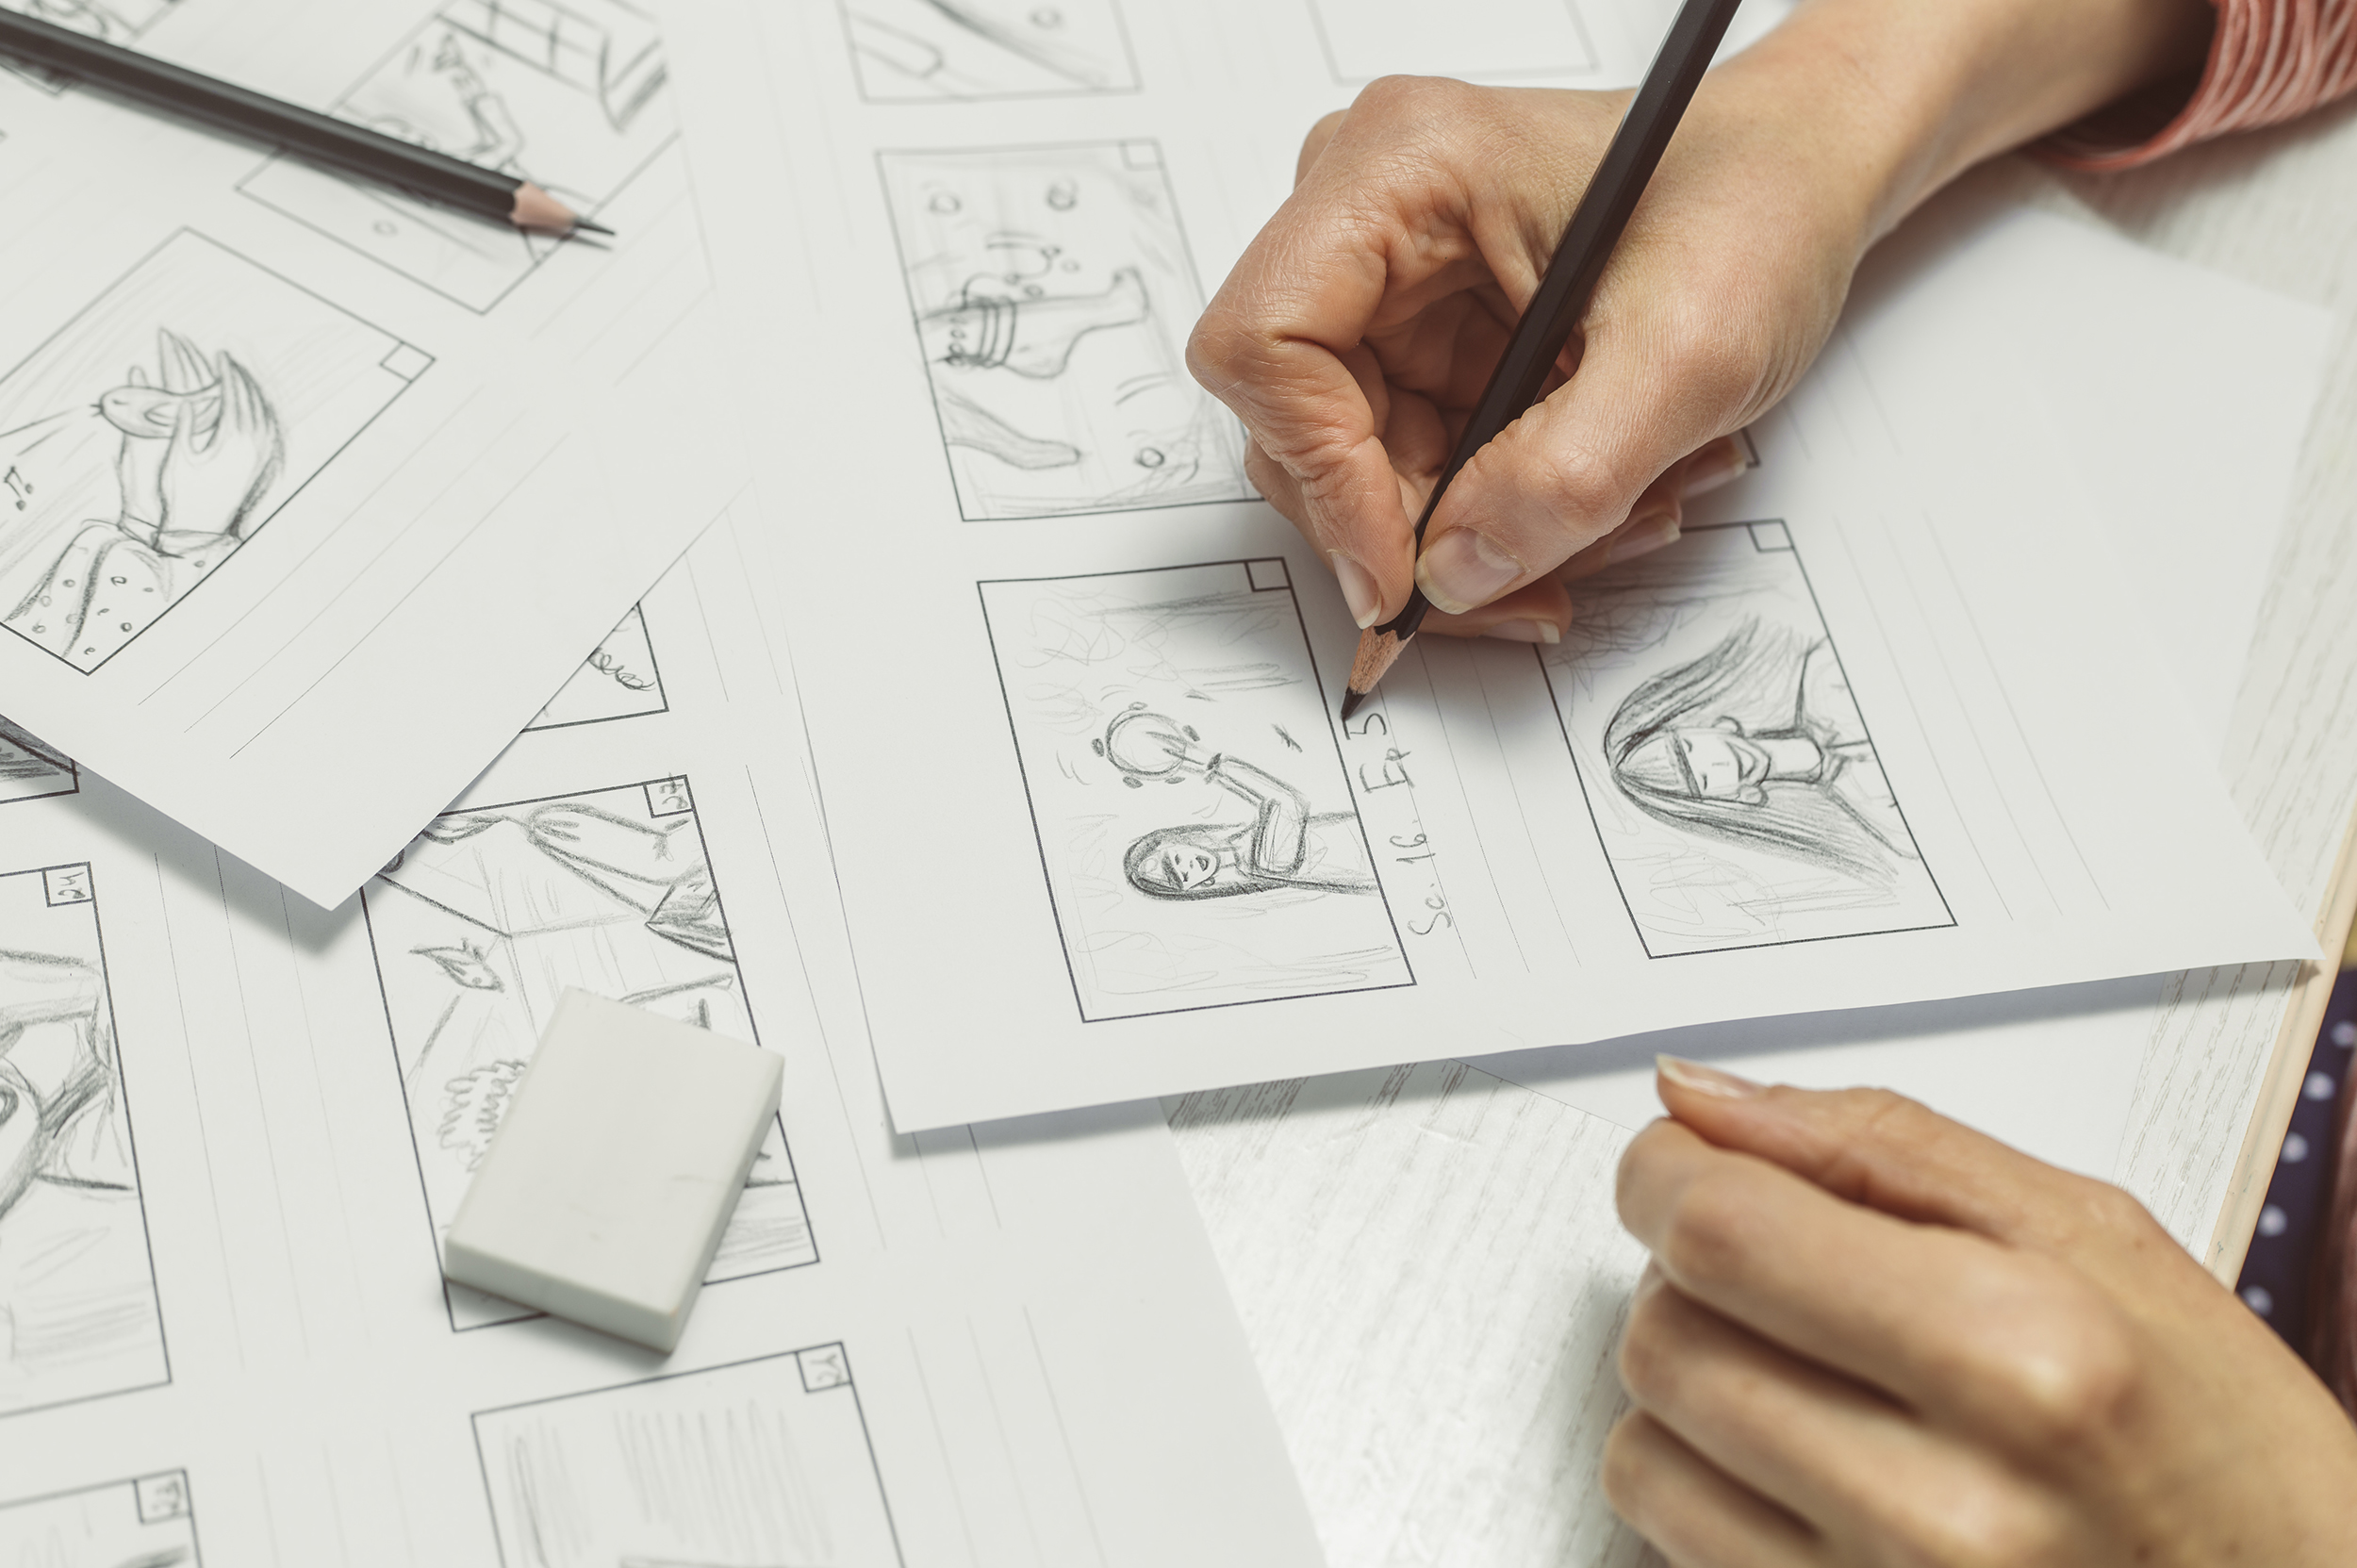 Photo of a hand drawing sketches on paper forming a storyboard.